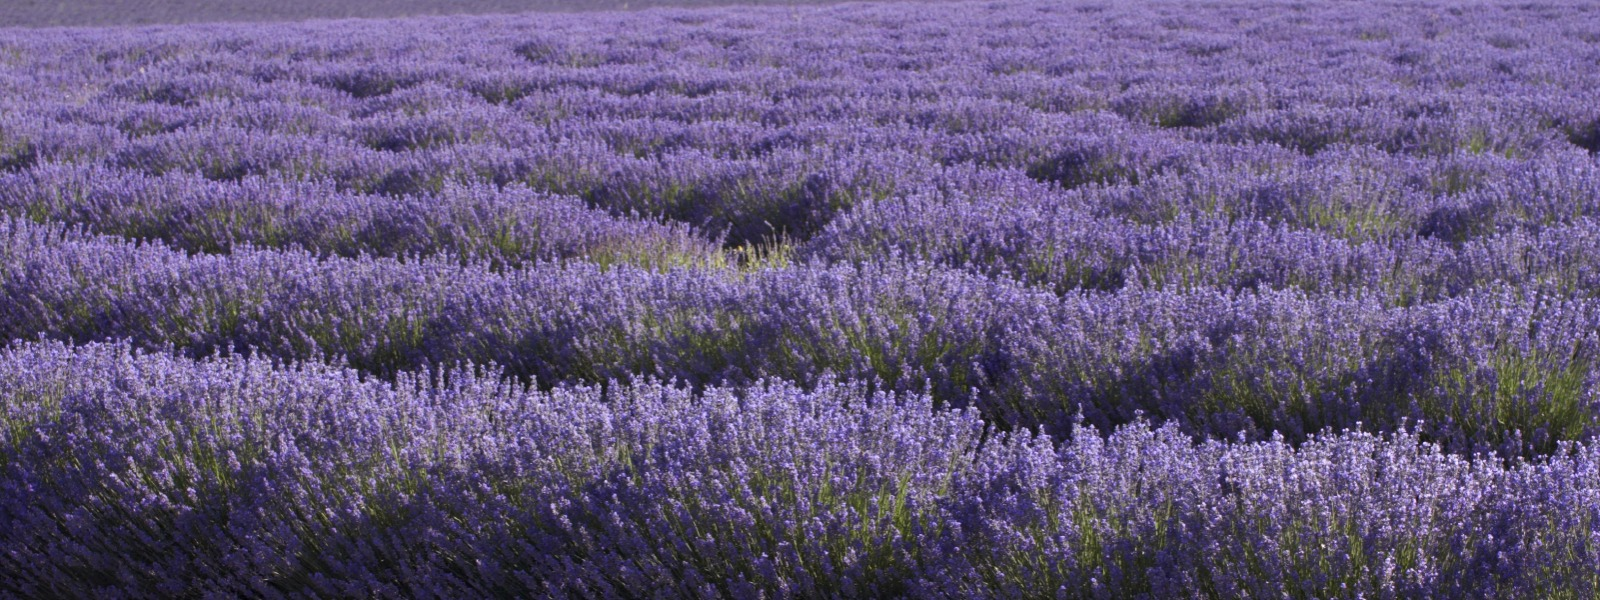 Lavender fields, Provence France